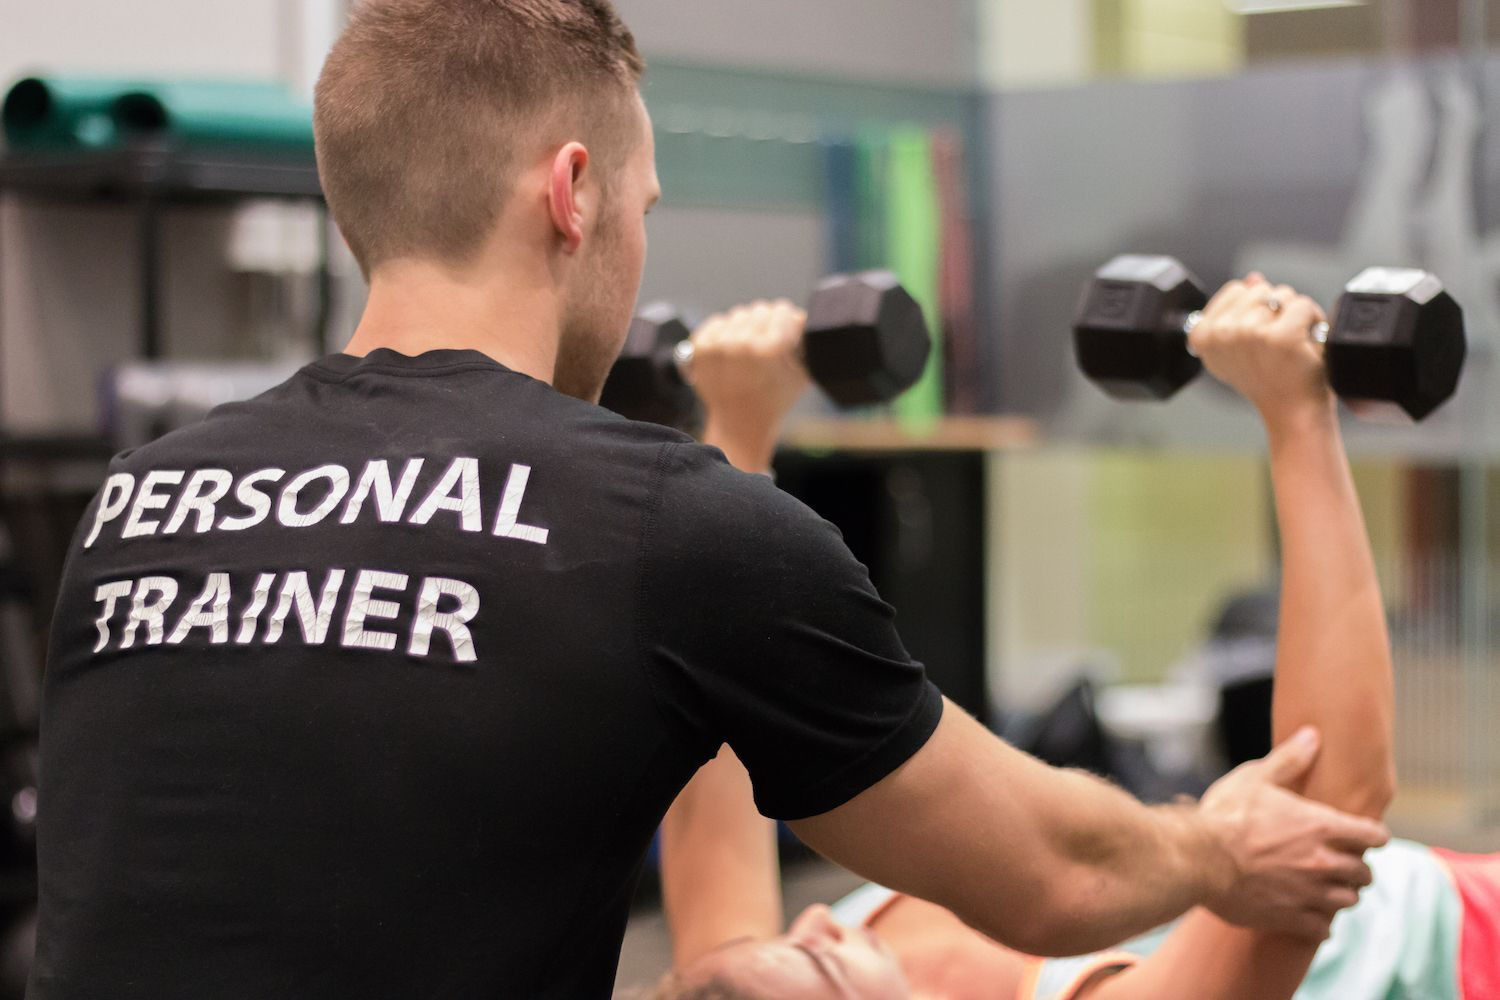 Personal training cert! Personal trainer, Personal